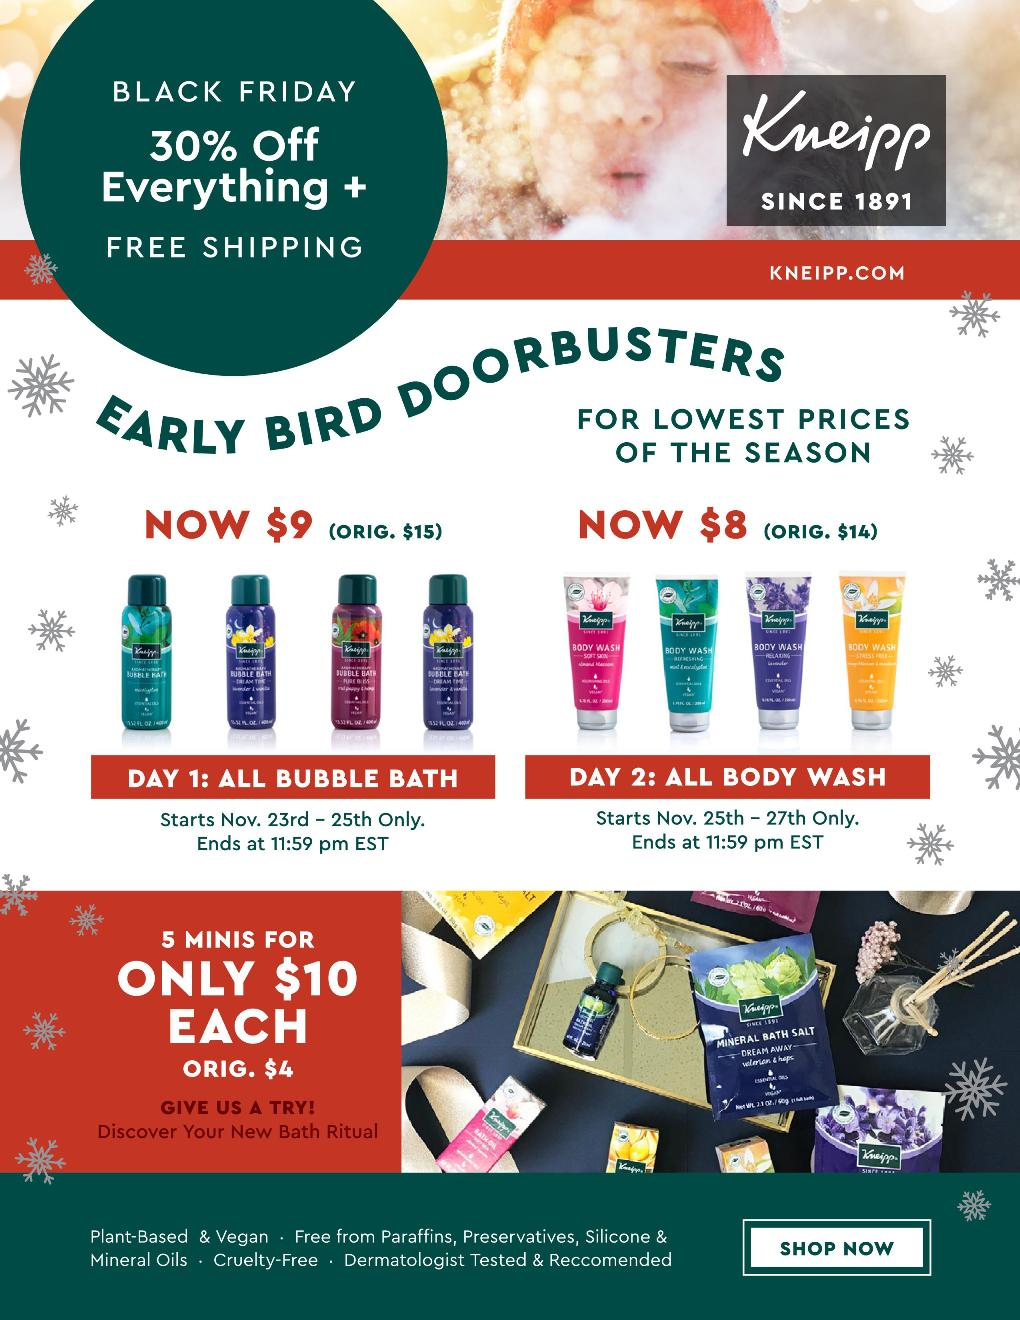 Kneipp Black Friday page 2